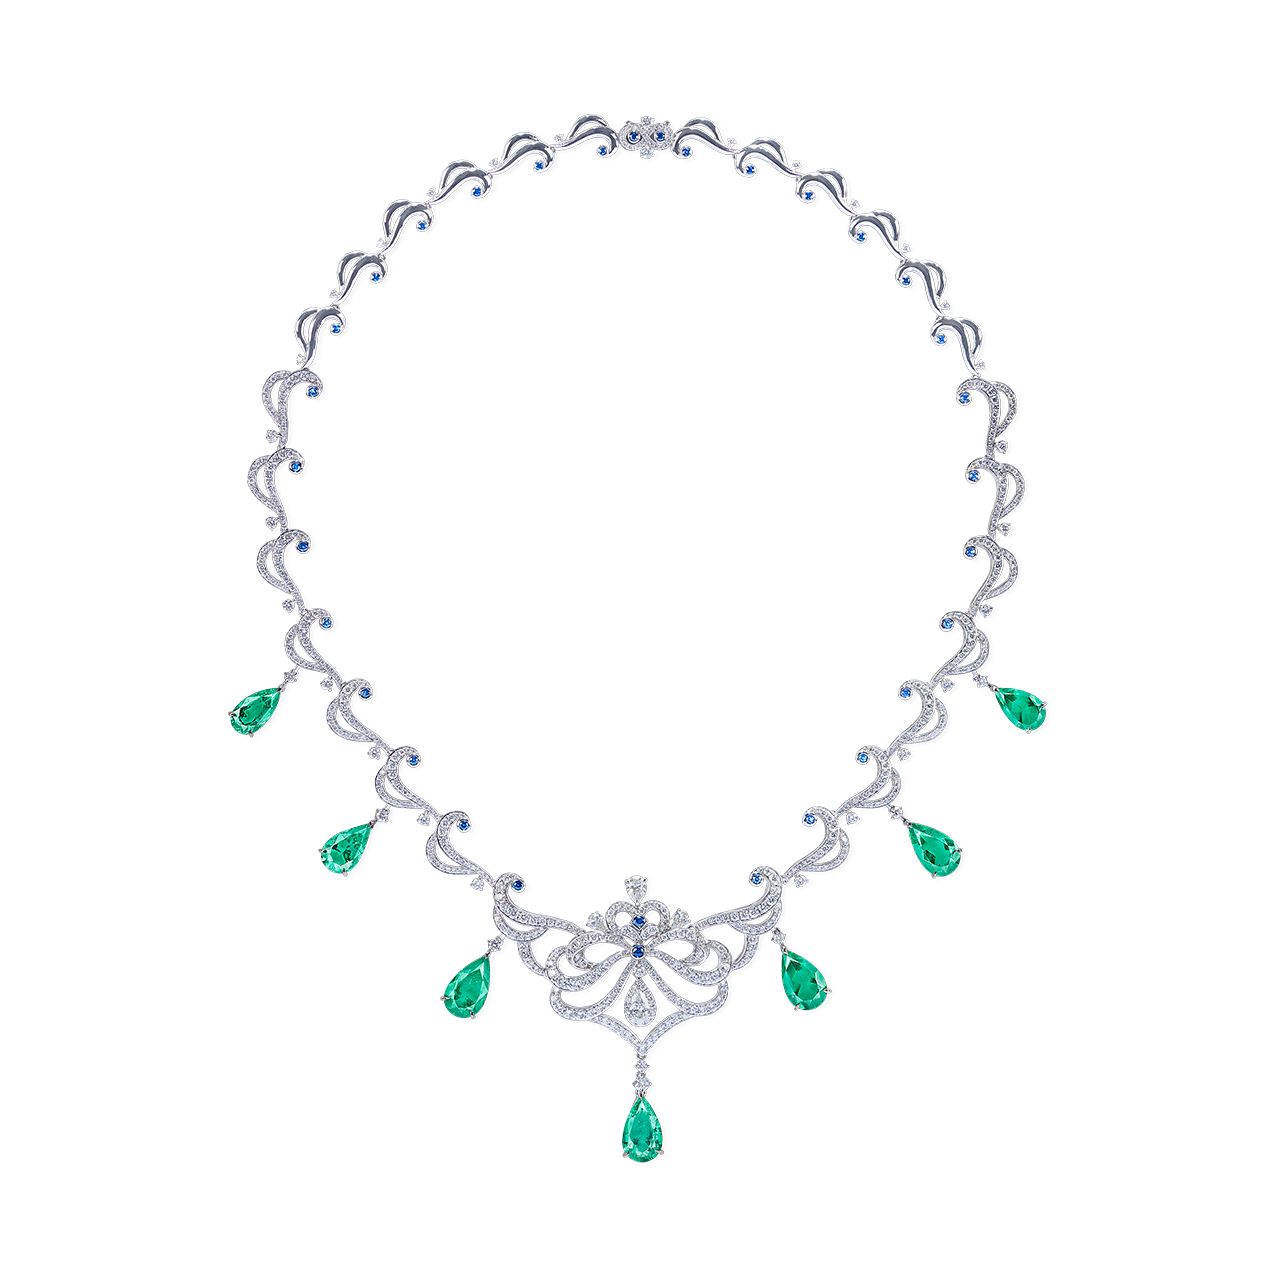 GRS 無油祖母綠套鍊 7P 20.51克拉